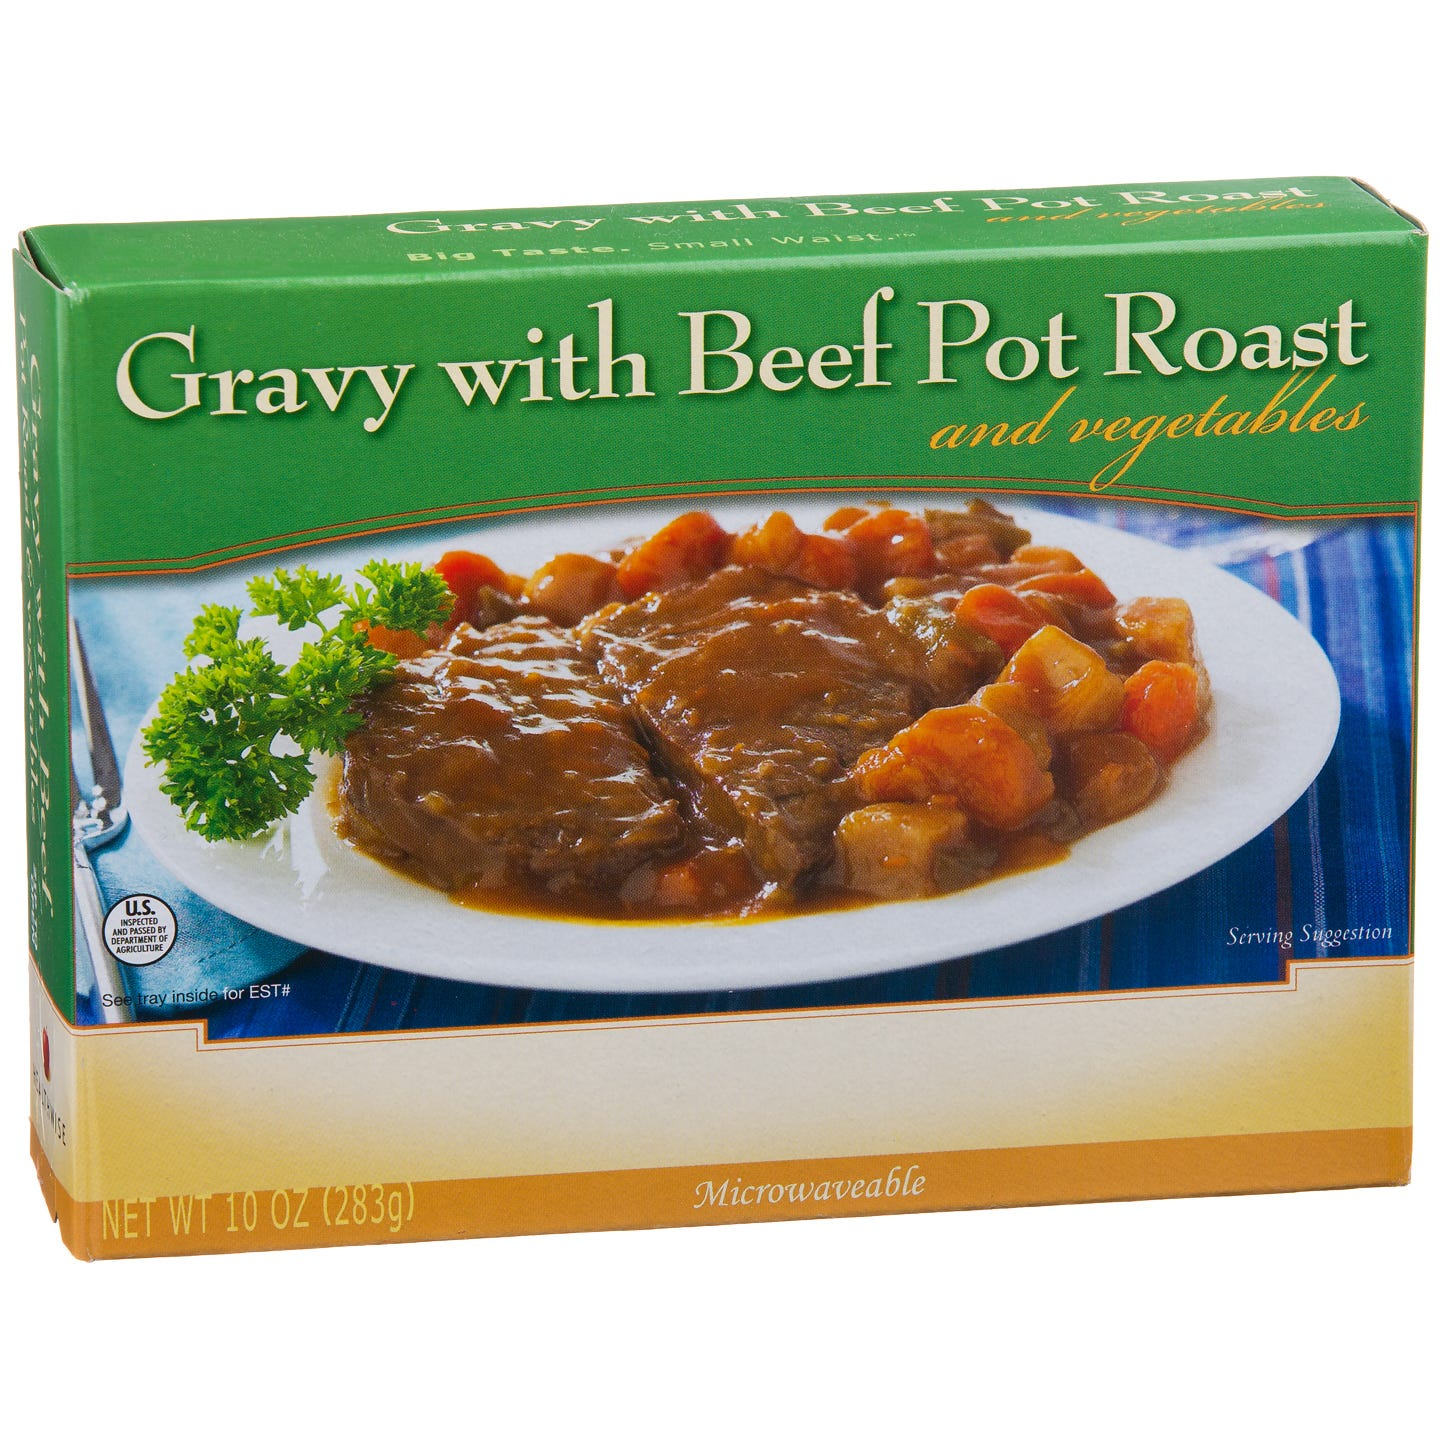 Low Calorie Meal Gravy with Beef Pot Roast 8 oz, BariWise - Rapid Diet Weight Loss Products Shop